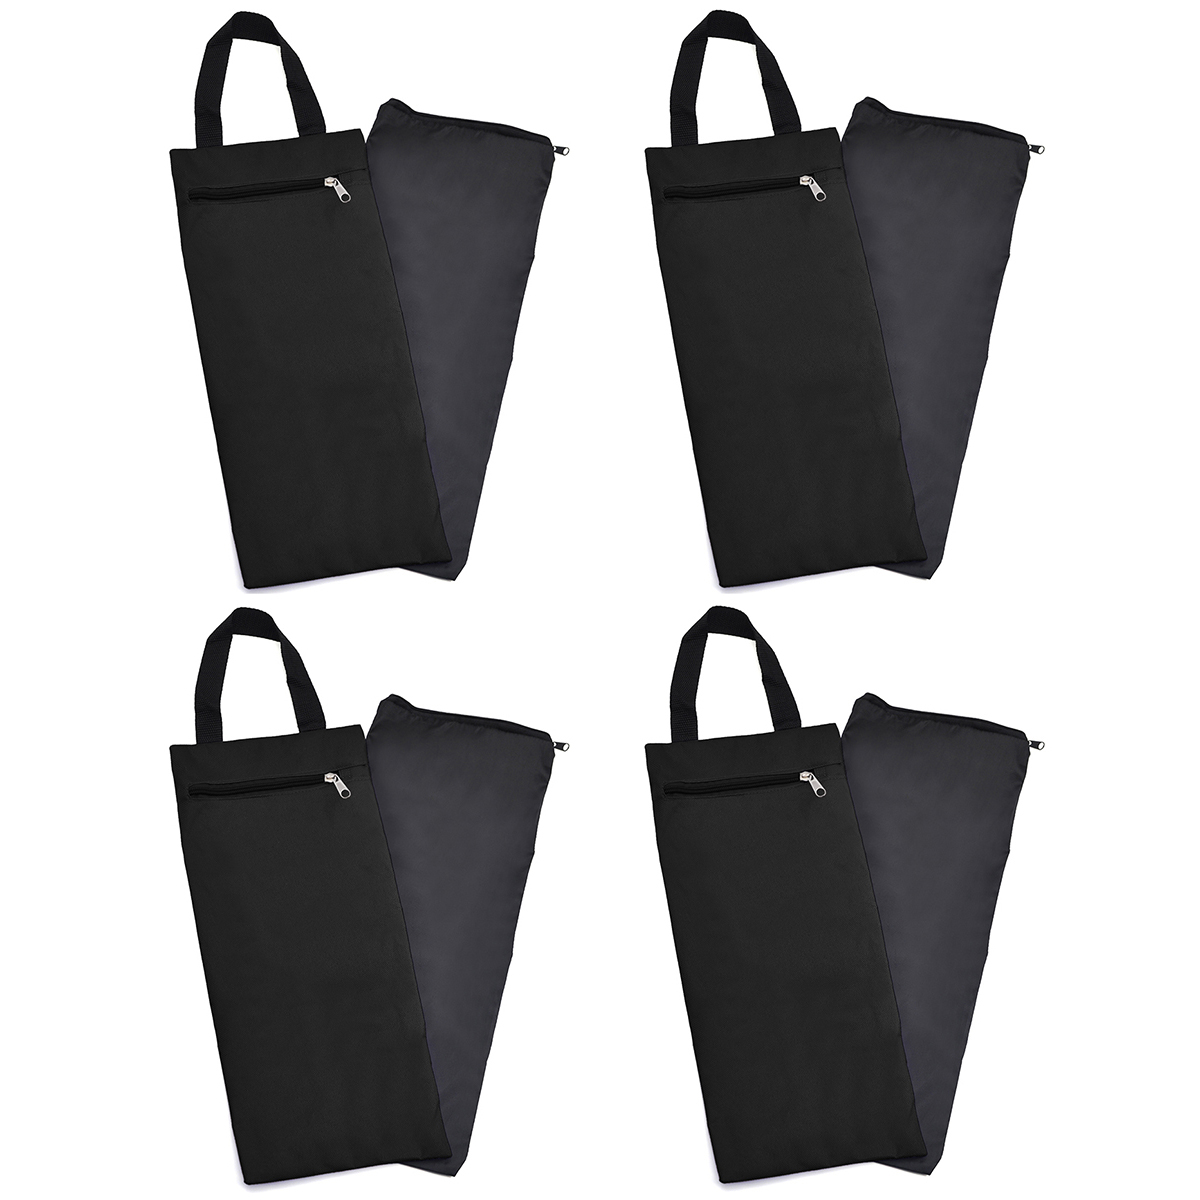 For Adding Weight And Support Unfilled Sandbag For Yoga And Pilates Canvas Yoga Aids Sandbags Yoga Fitness Sandbags Prop Xploit Yoga Sand Bags Indoor Double Bag